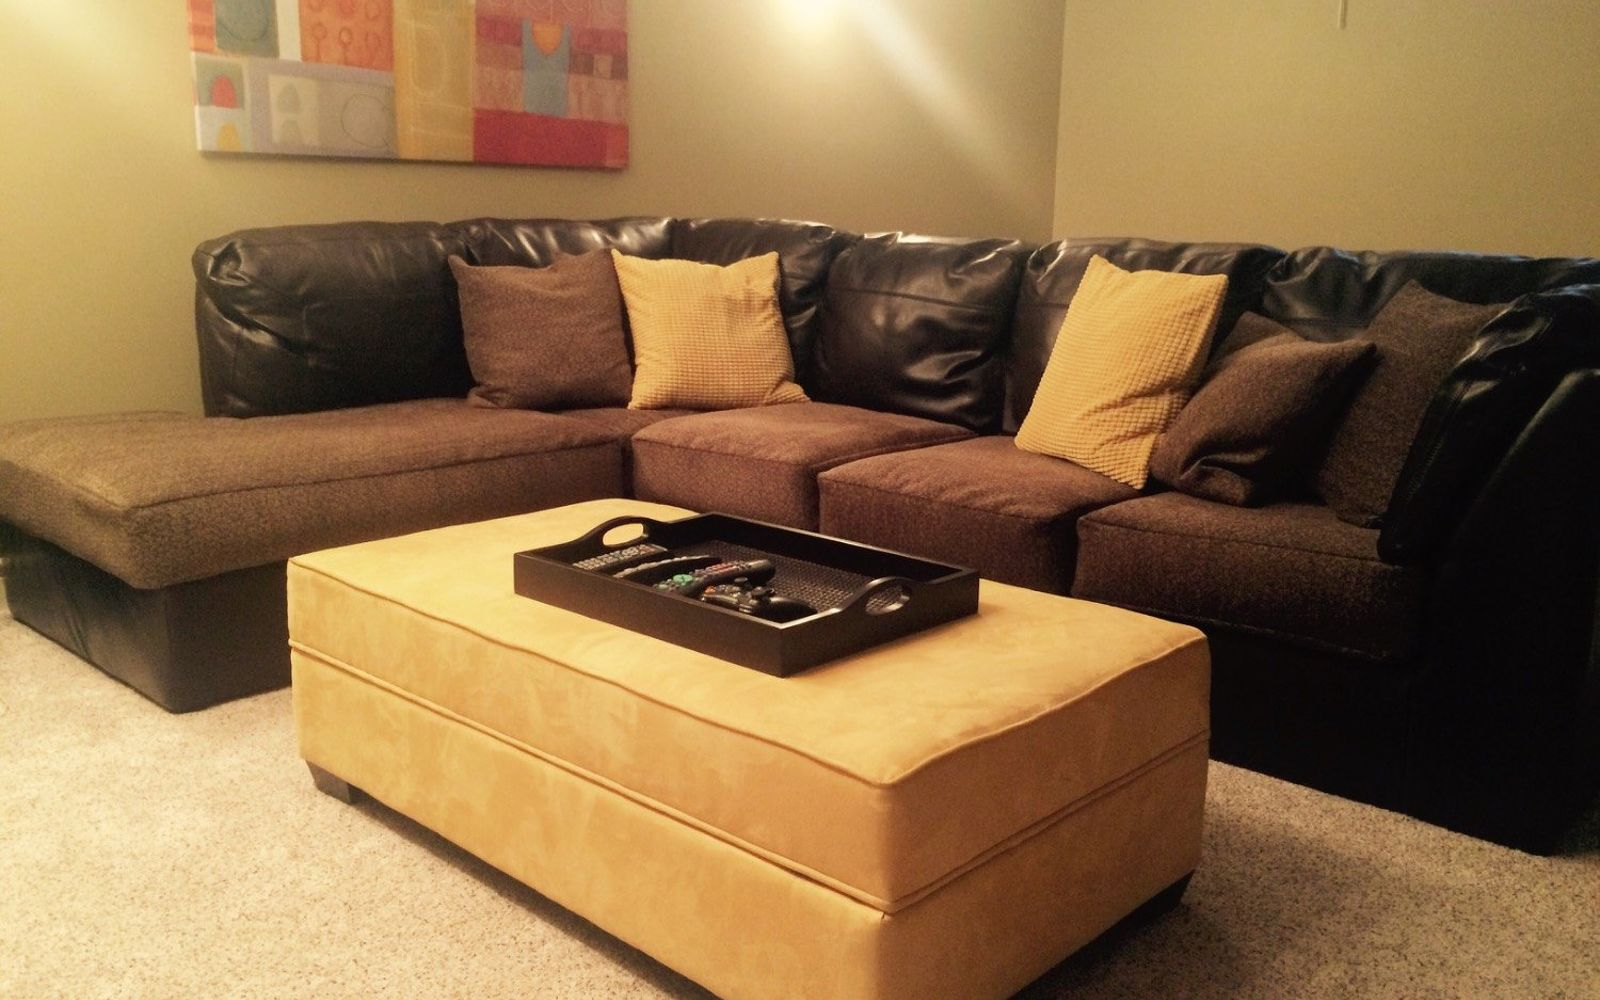 s hide your couch s wear and tear with these great ideas, From throwaway couch to a comfy new one